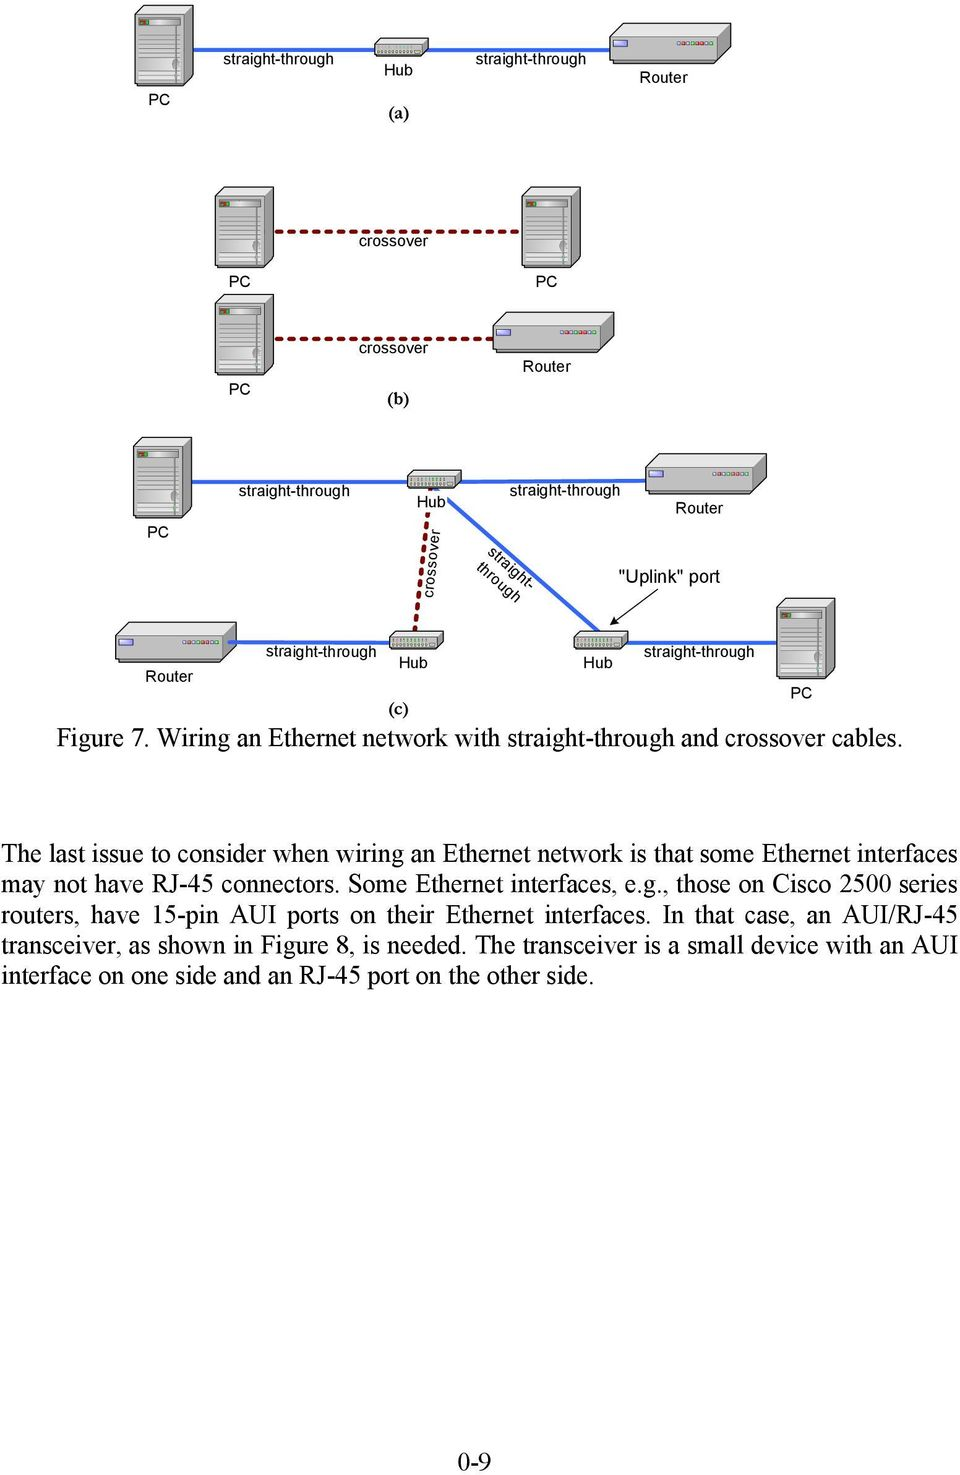 The last issue to consider when wiring an Ethernet network is that some Ethernet interfaces may not have RJ-45 connectors. Some Ethernet interfaces, e.g., those on Cisco 2500 series routers, have 15-pin AUI ports on their Ethernet interfaces.